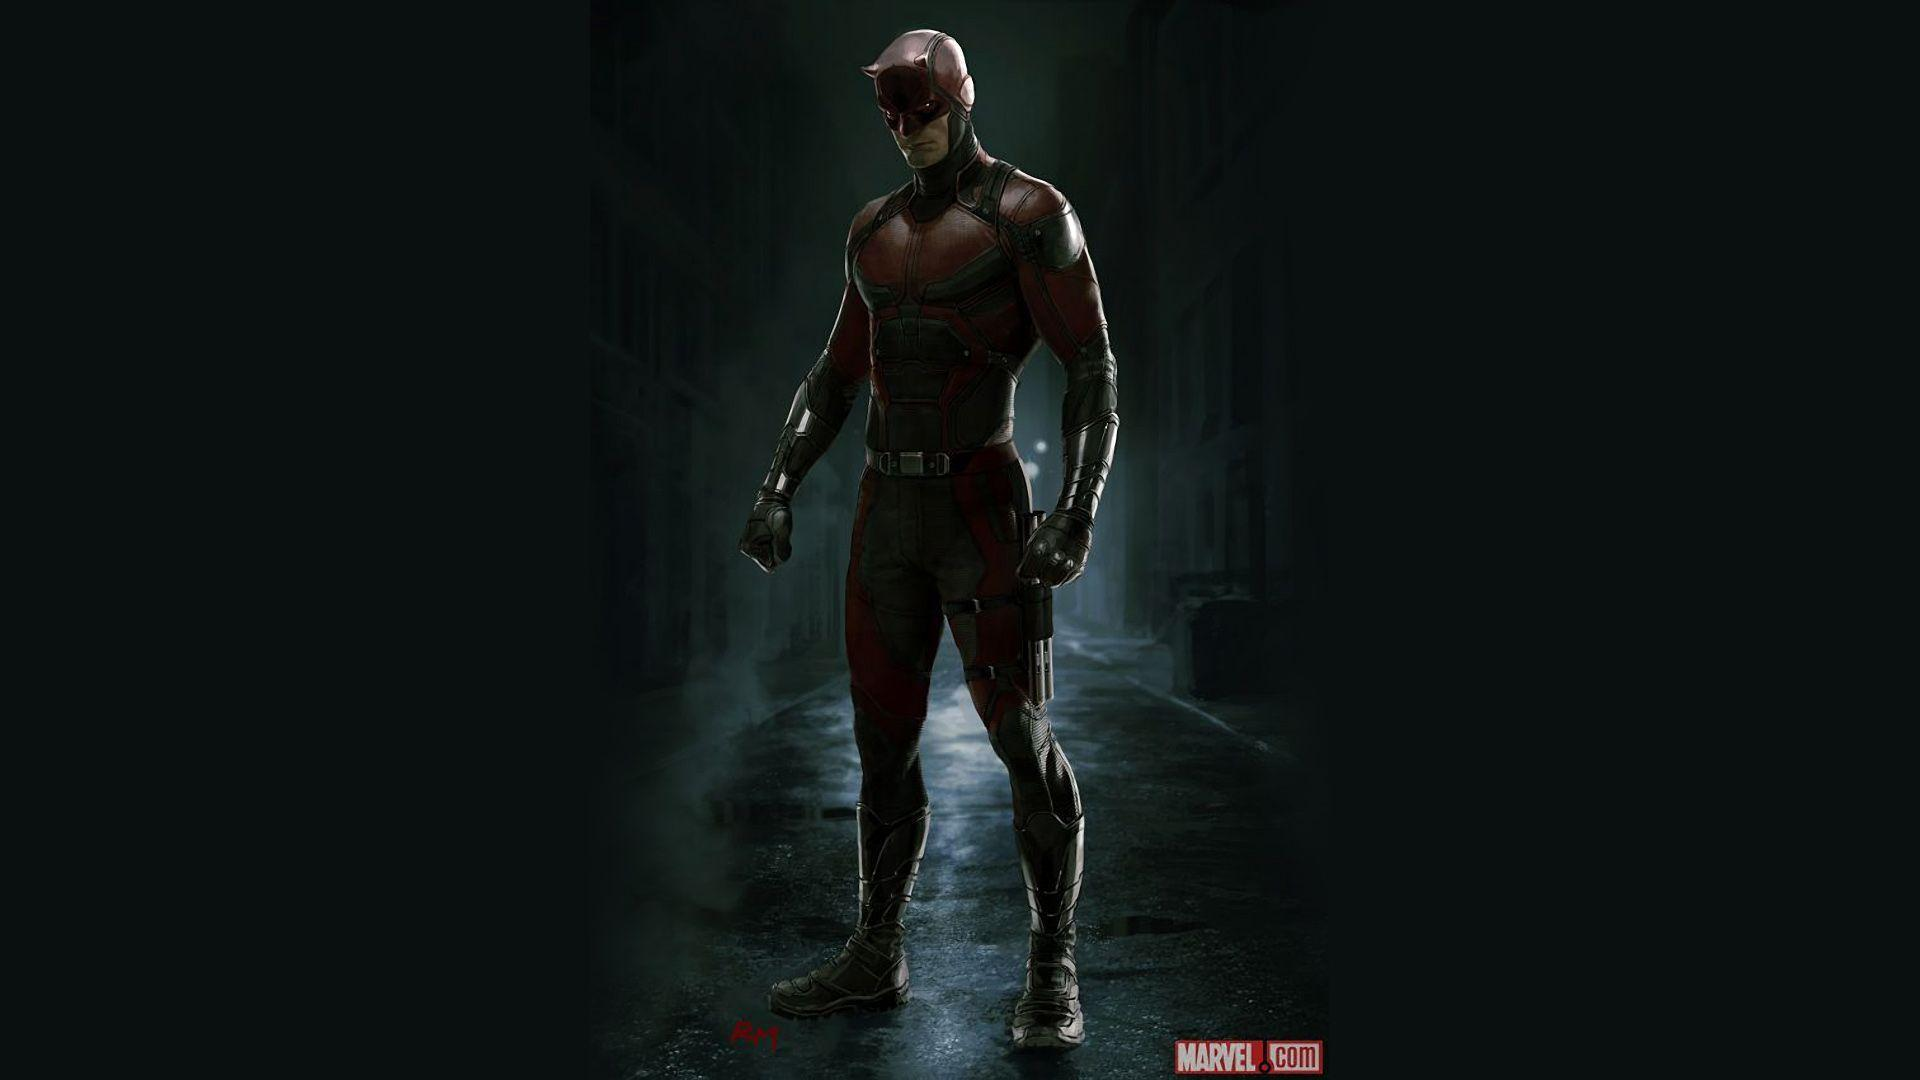 Daredevil Marvel Wallpapers Wallpaper Cave